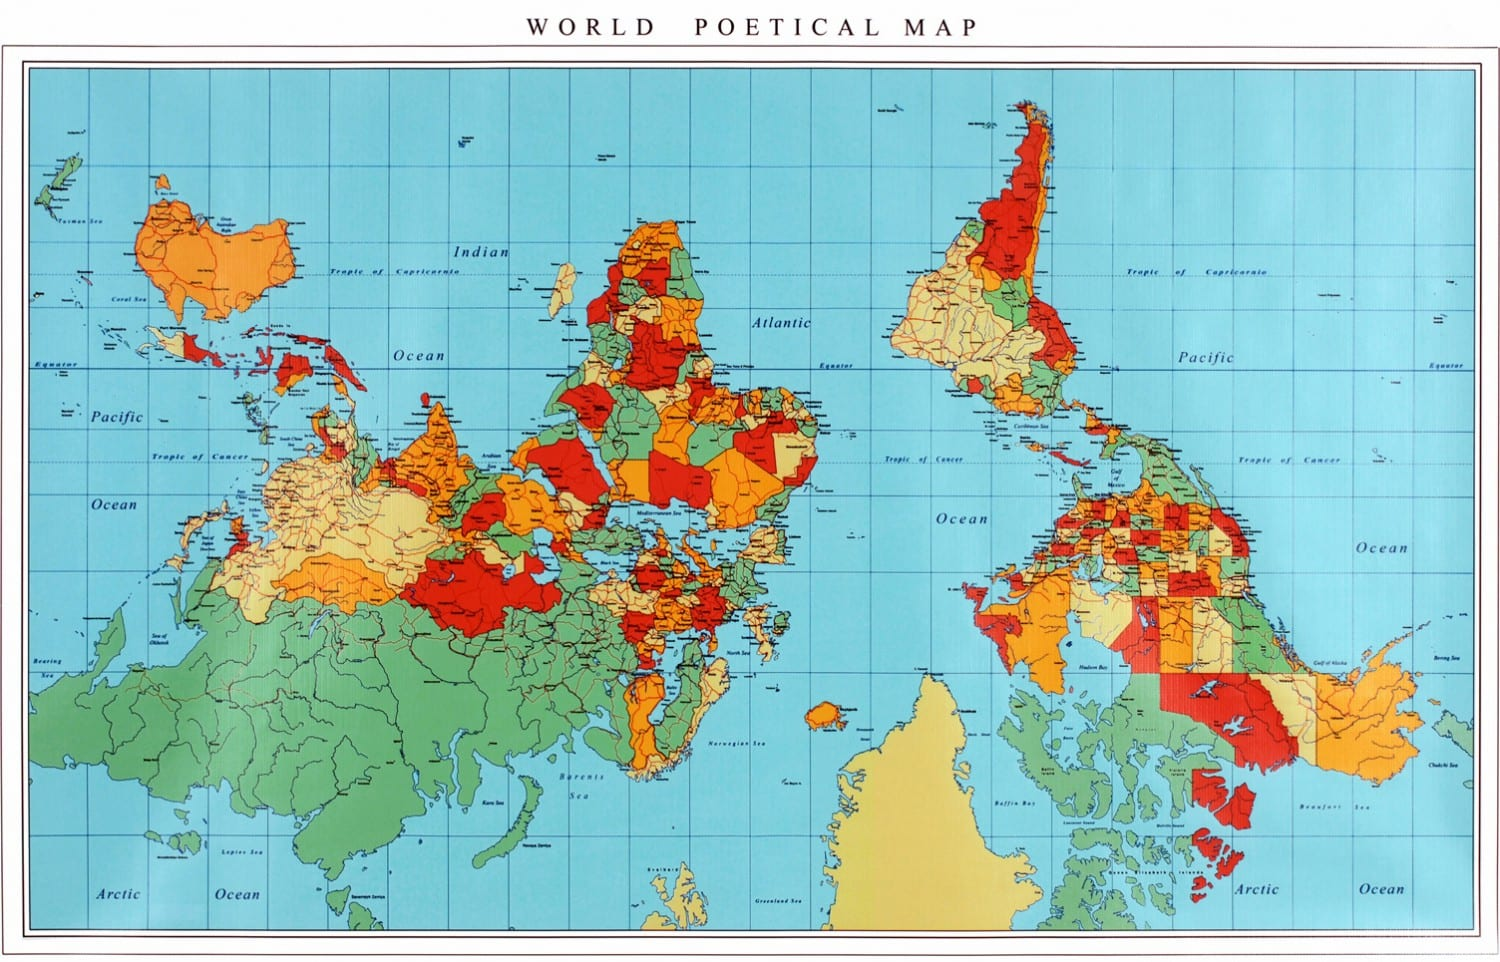 WORLD POETICAL MAP: R & R Studios, Roberto Behar & Rosario Marquardt